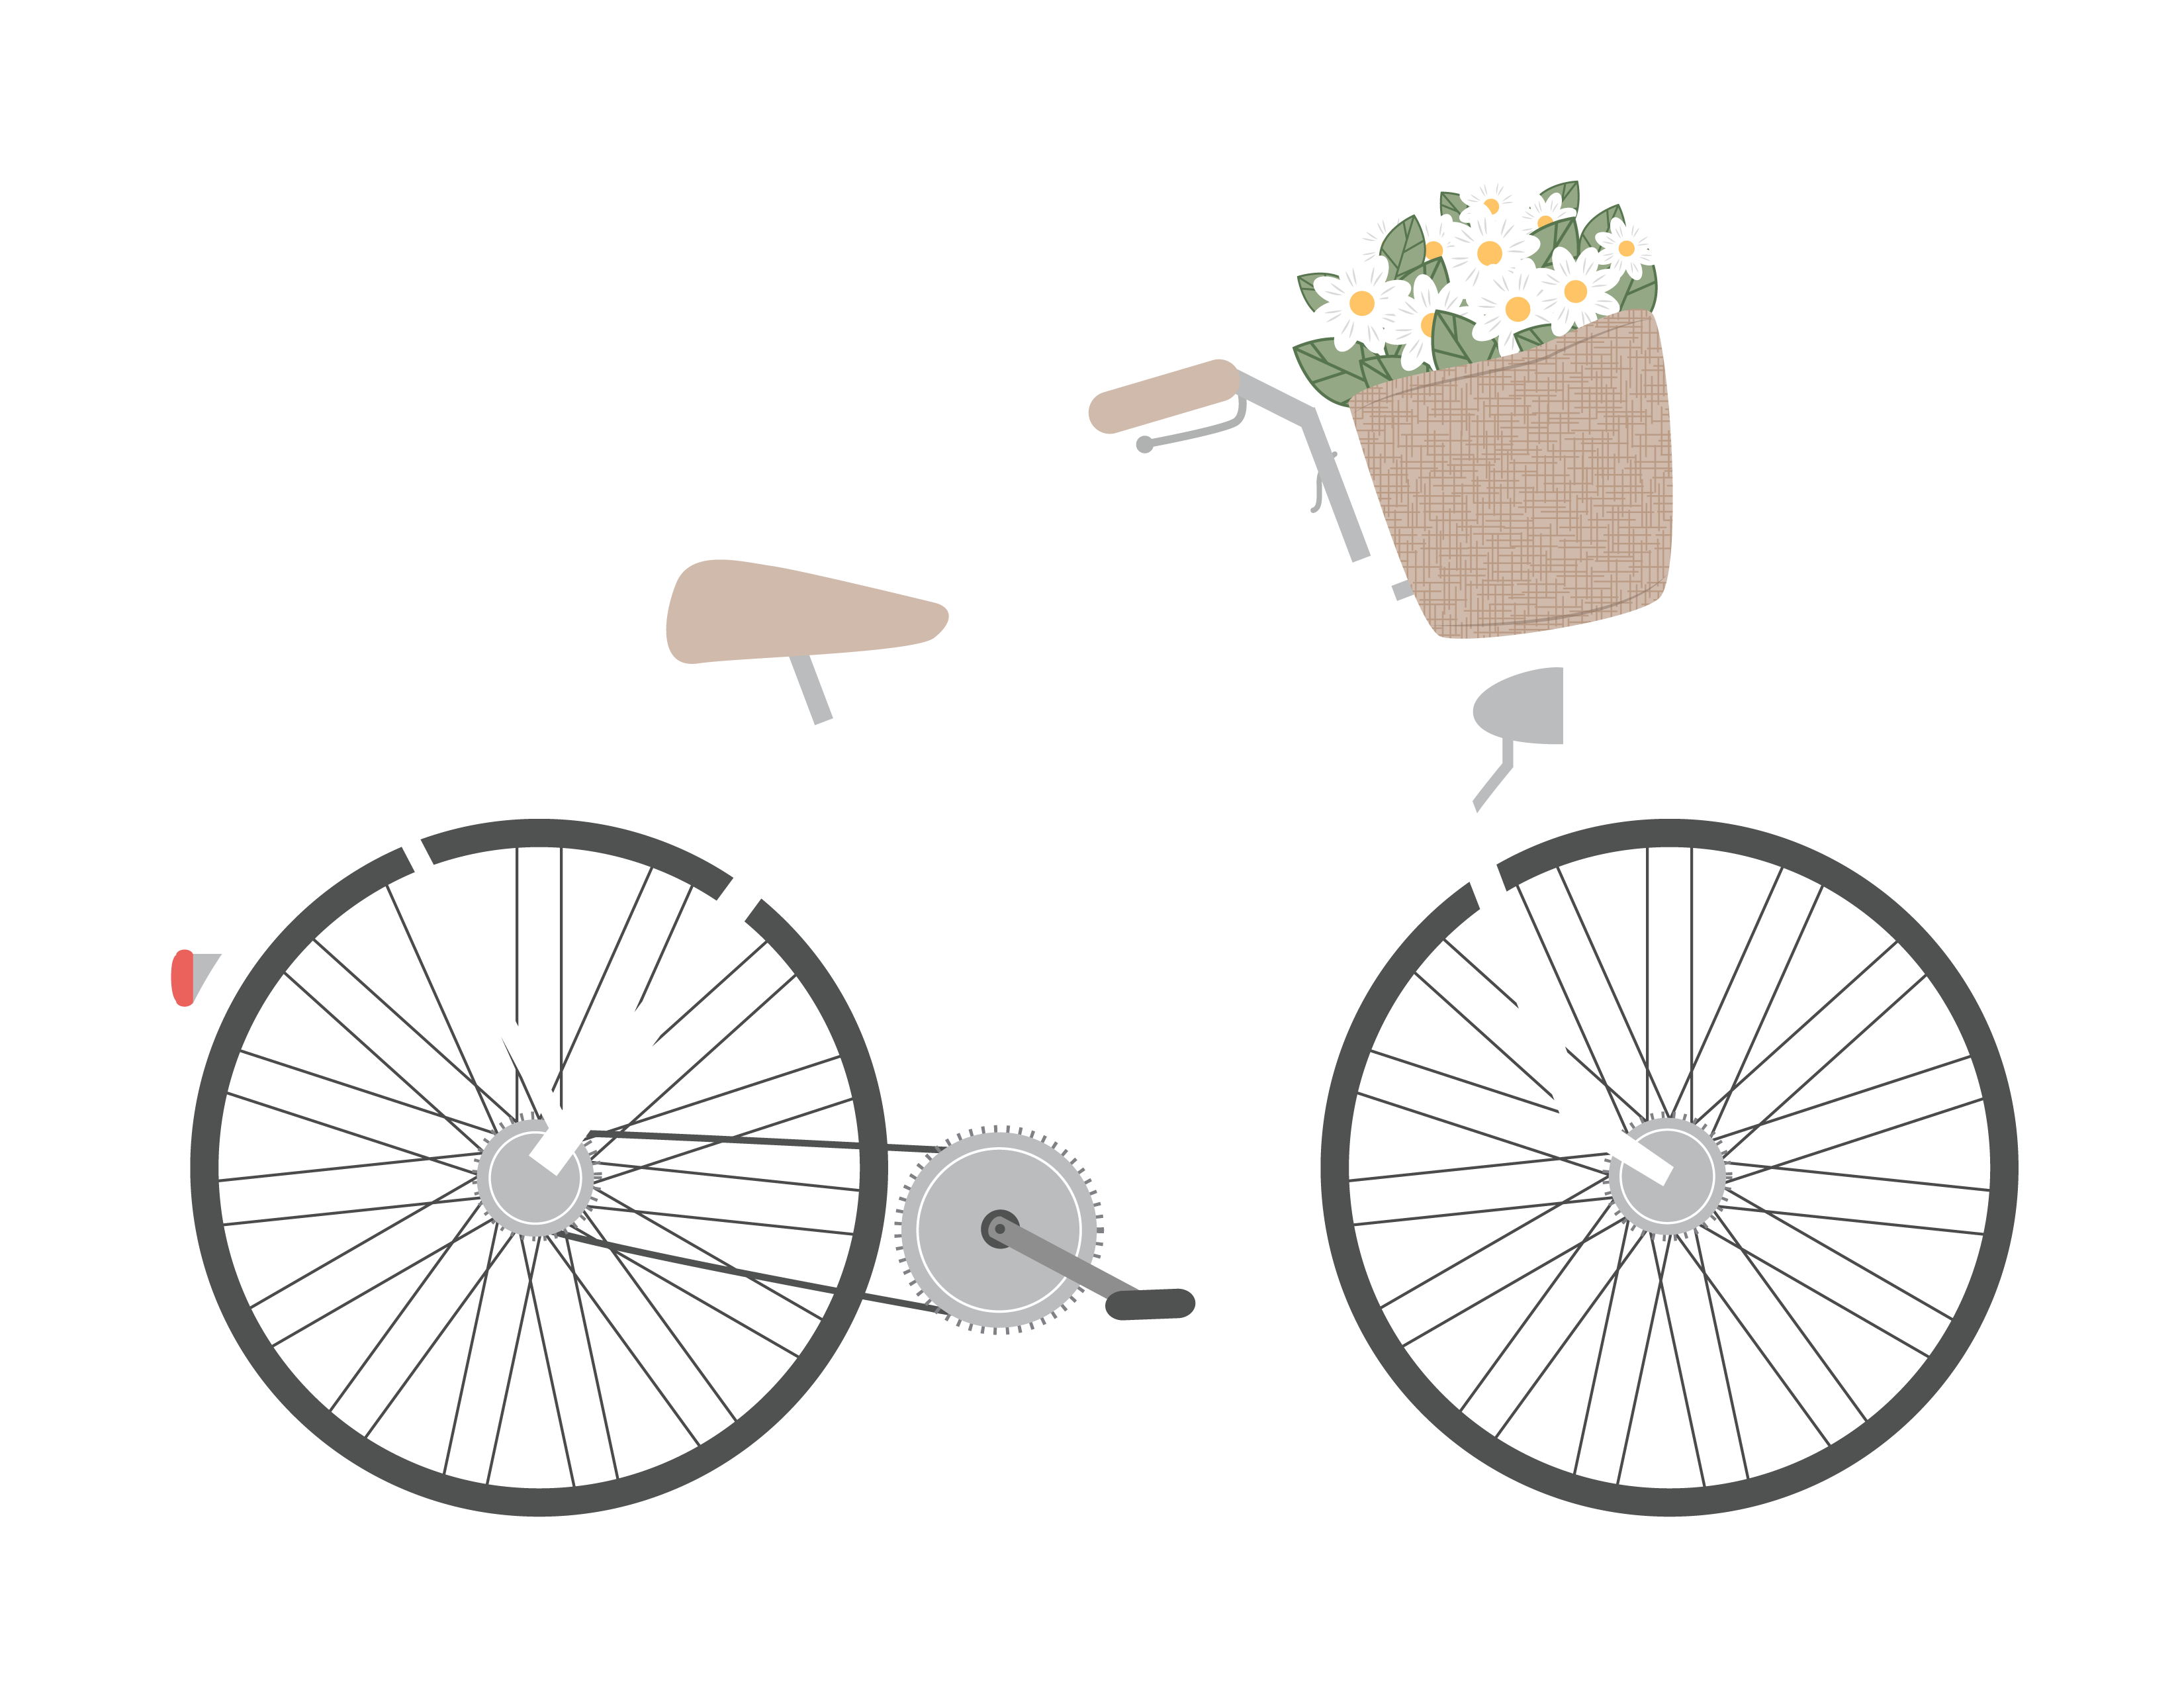 Engagement clipart tandem bicycle. Www freeprettythingsforyou com wp